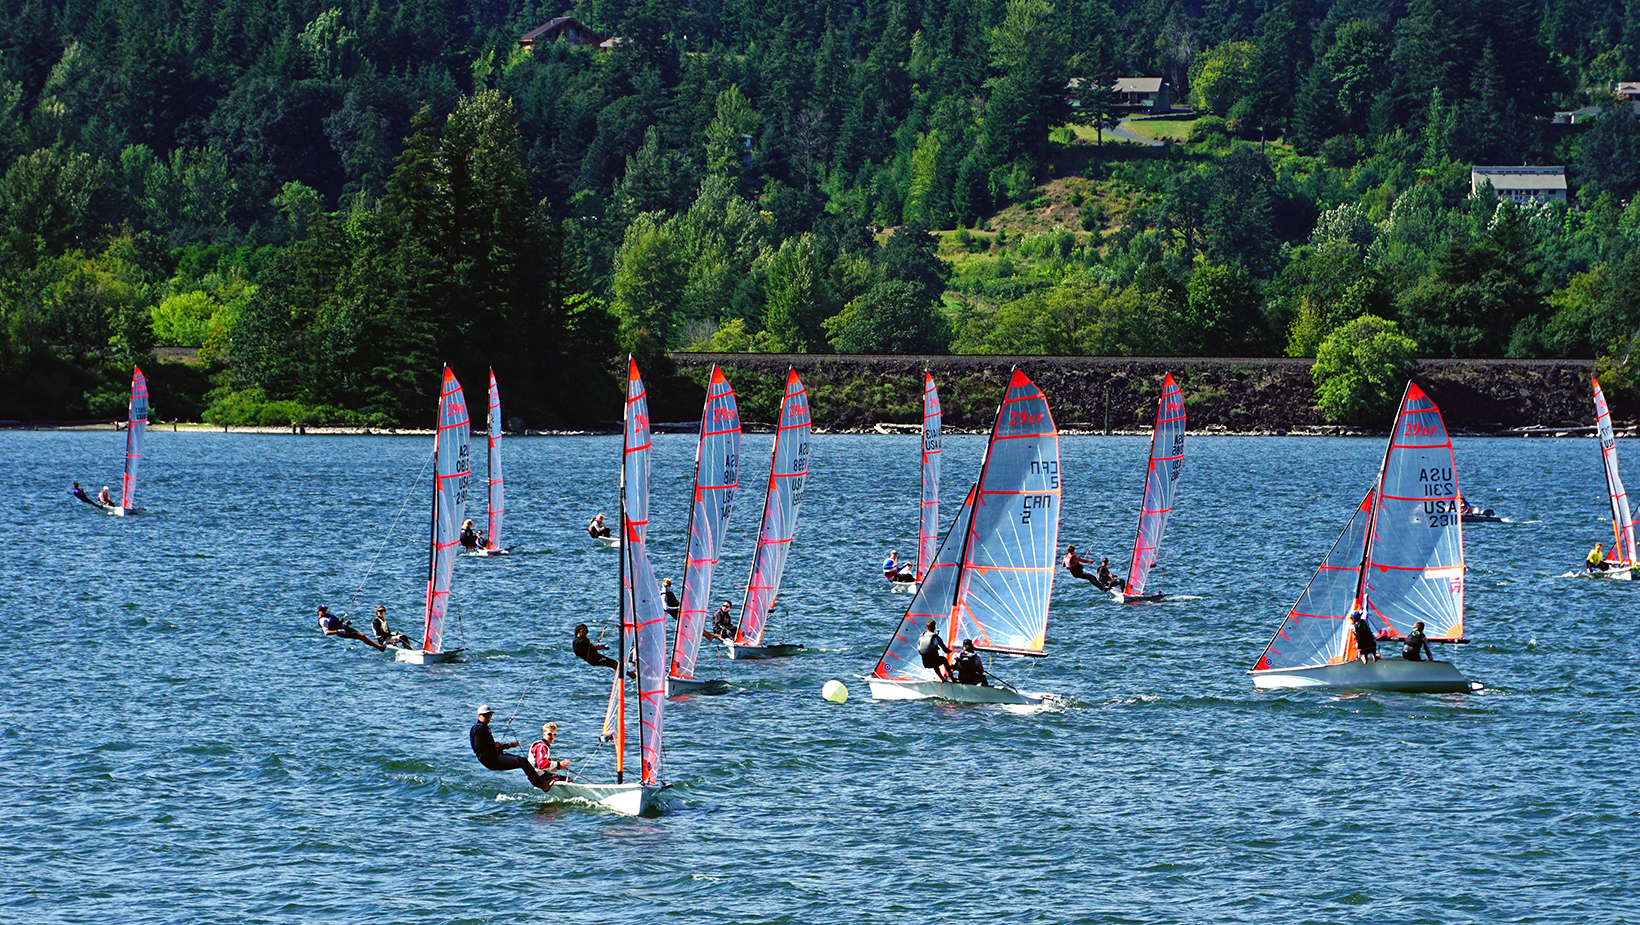 Sailors race across the Columbia River in Cascade Locks during one of many sailing regattas and championships in the Gorge